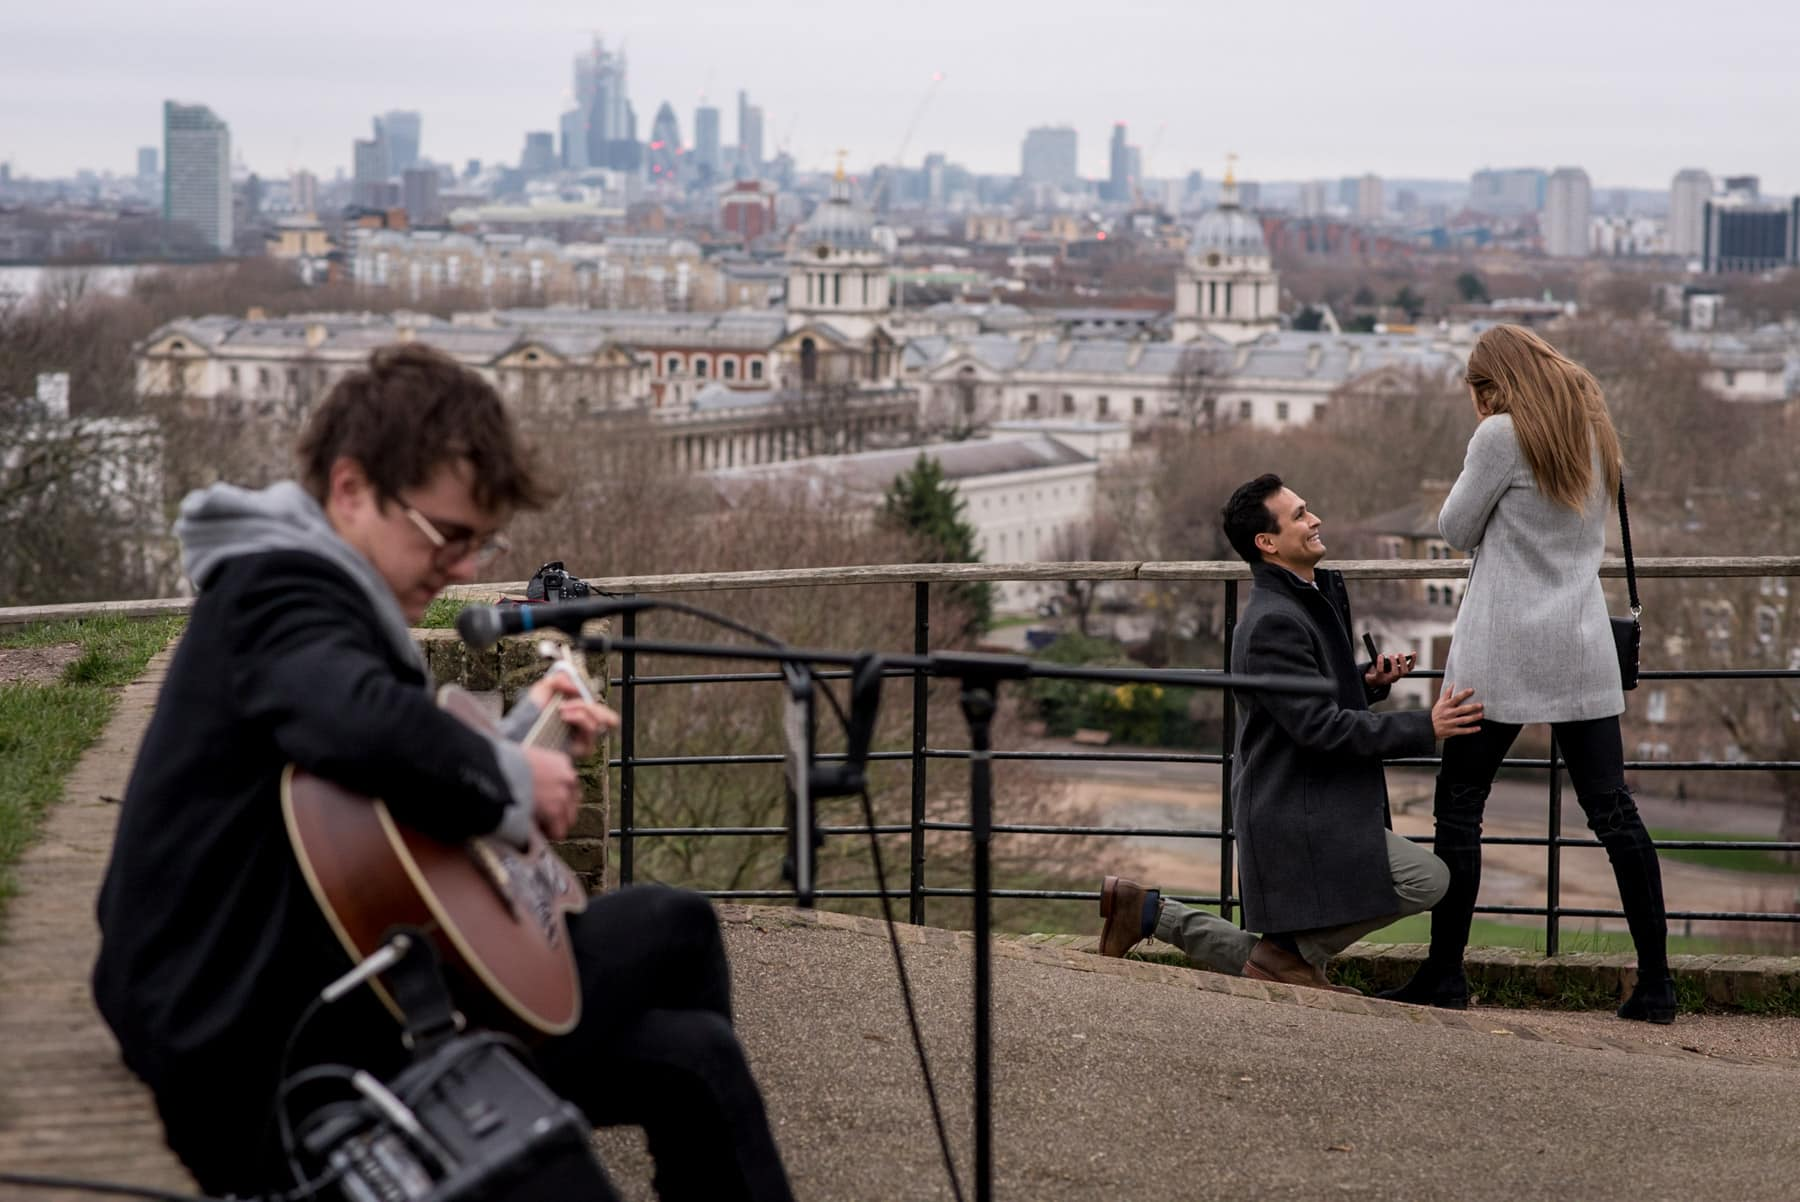 A man on his knees proposing to his girlfriend with views over London and a guitar player. Photo taken in Greenwich park.